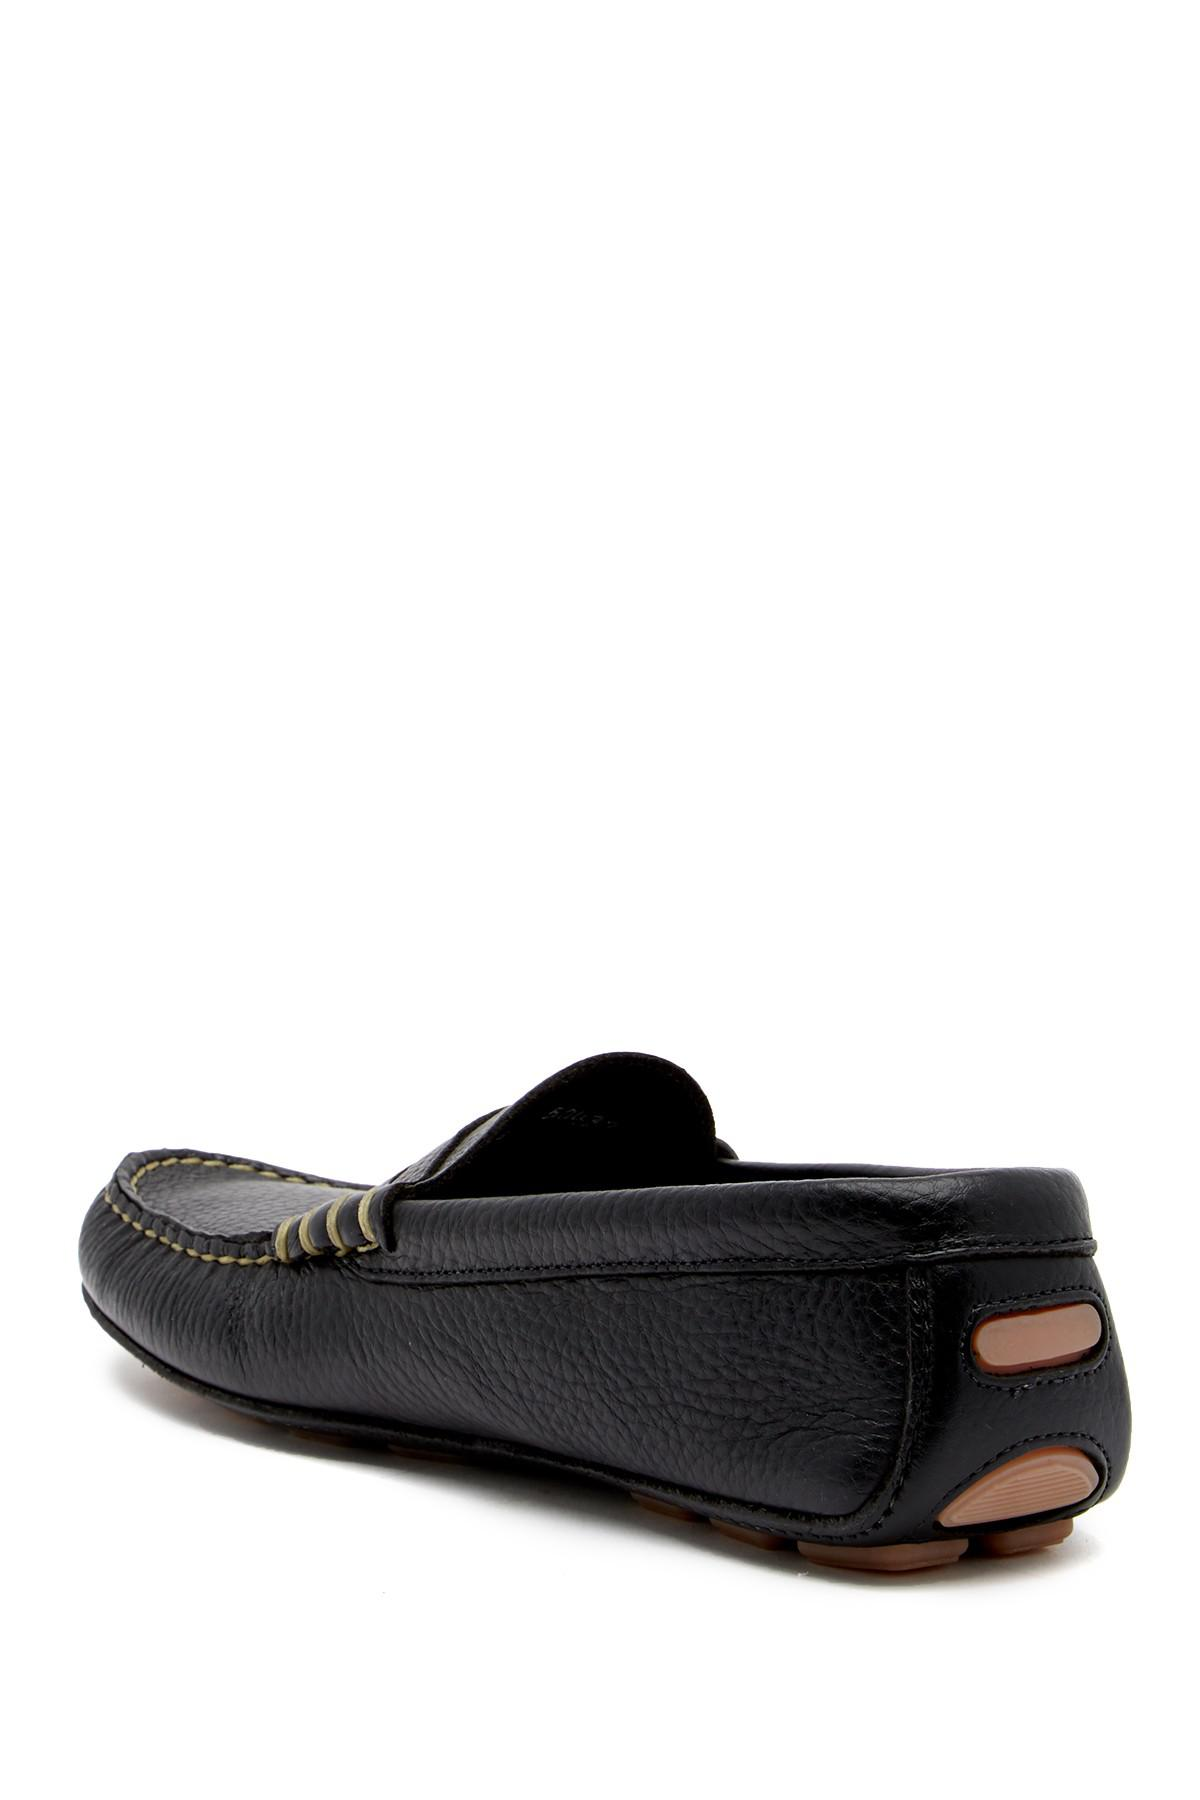 lyst allen edmonds daytona leather loafer in black for men